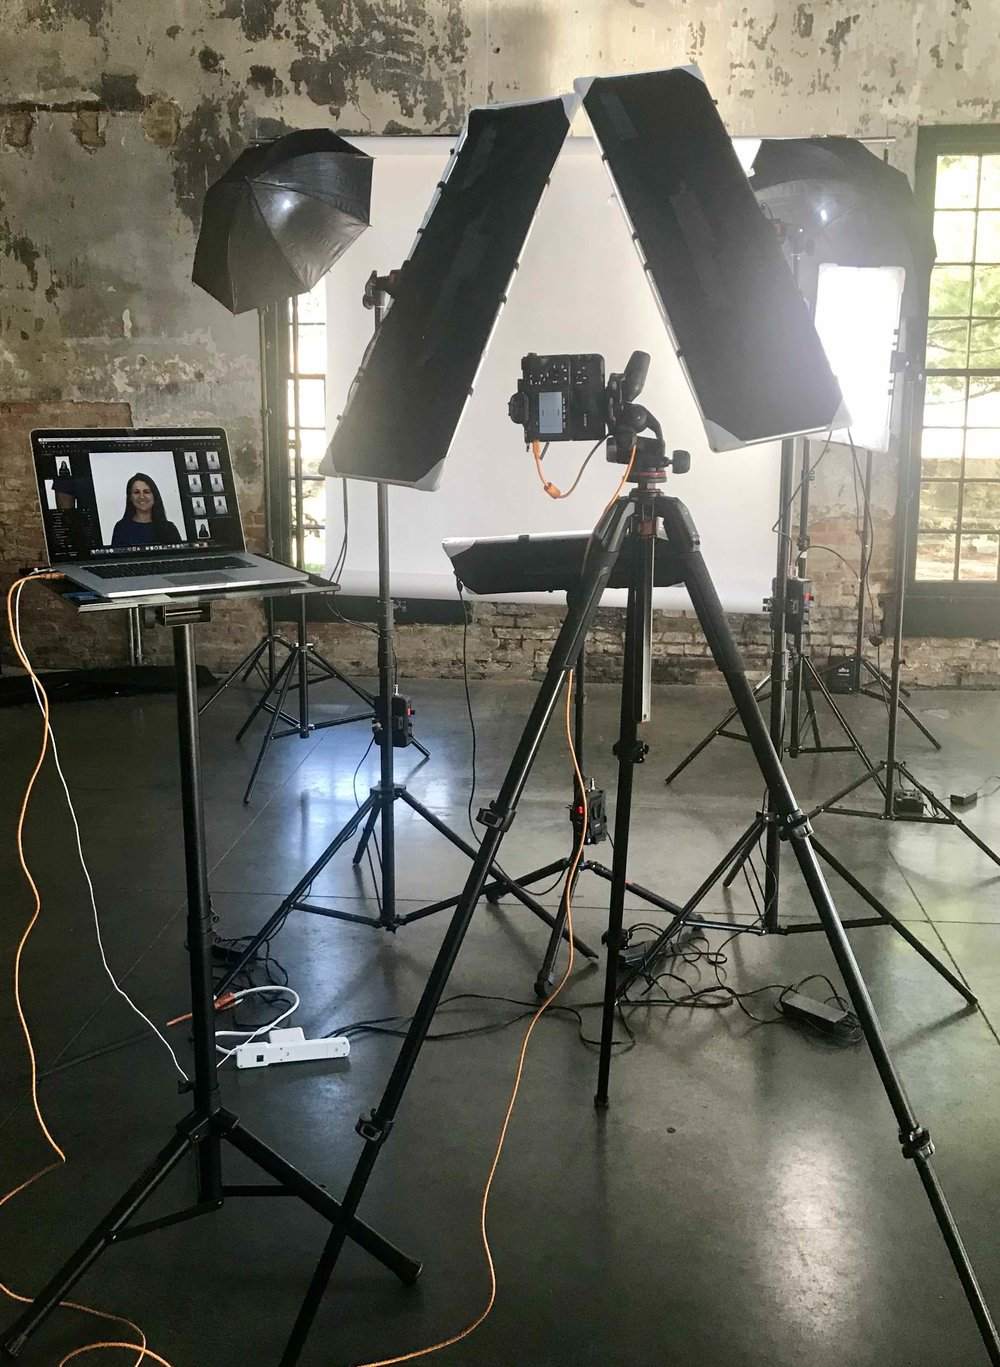 ON LOCATION VOLUME HEADSHOT SESSION - Full Day - 8 hours $1800Half Day - 4 hours $900